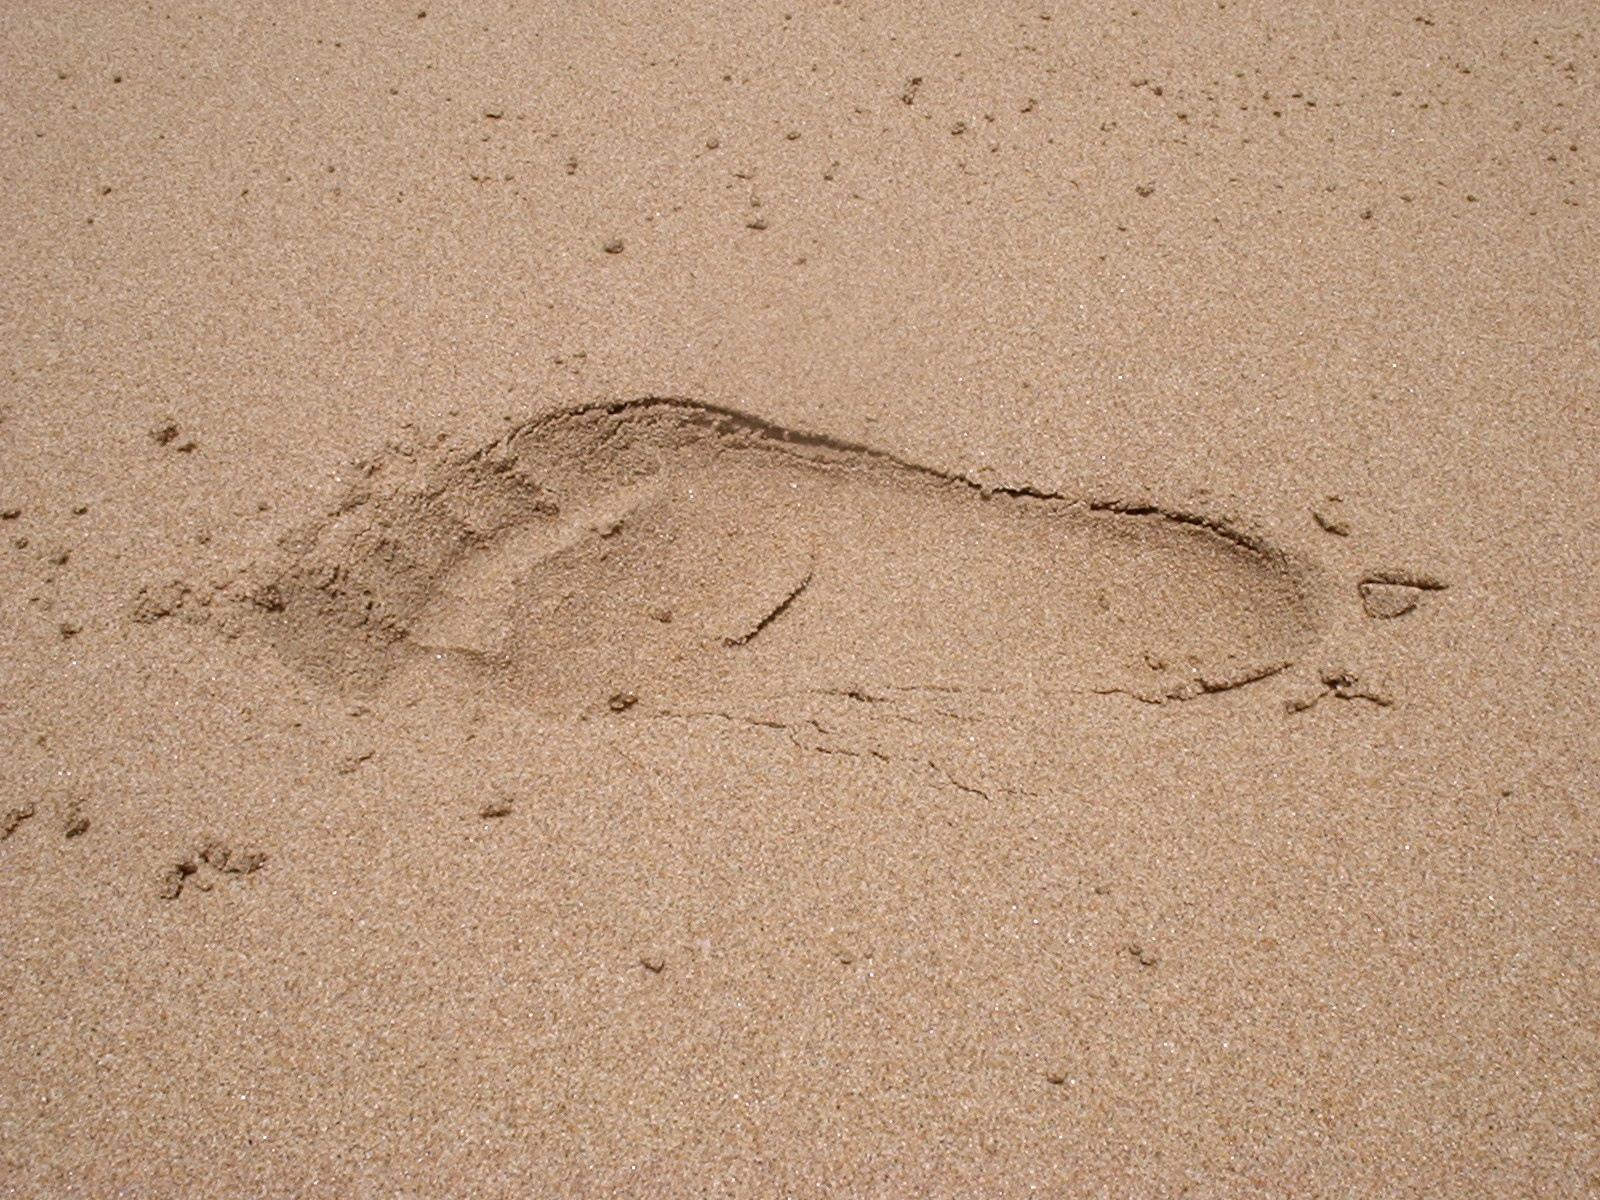 Jeff's foot, Balding Bay, Magnetic Island